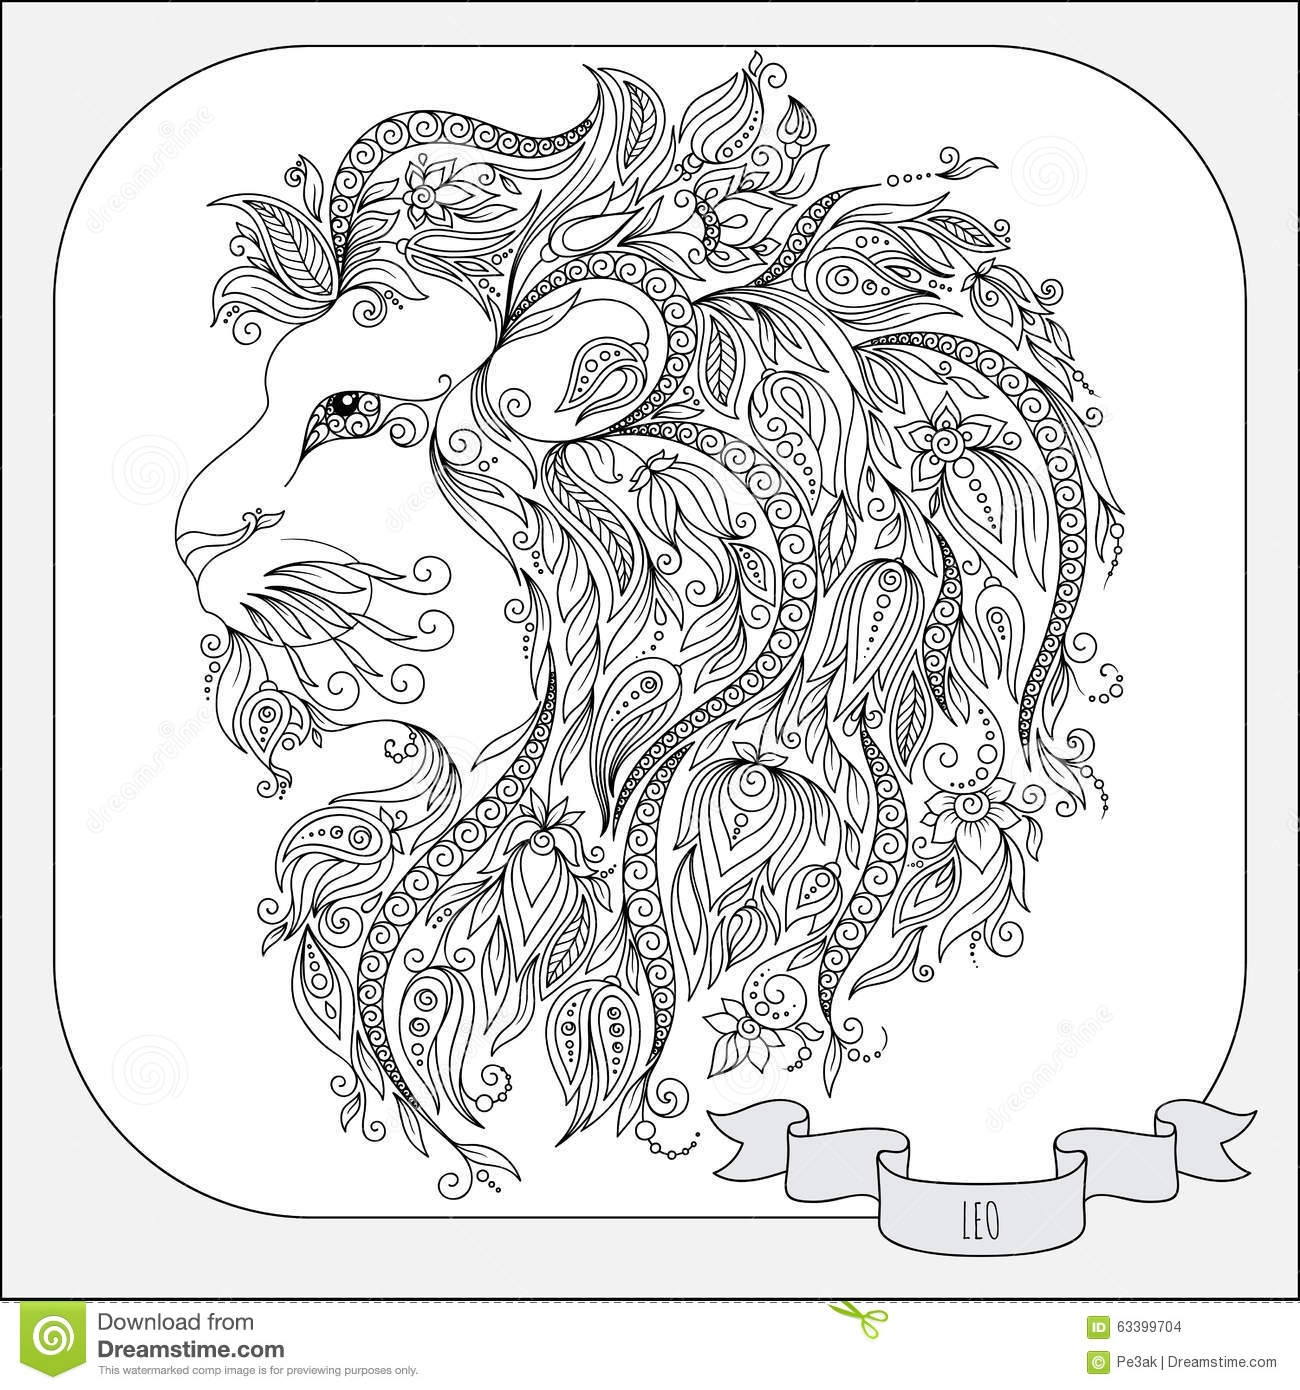 snow leopard coloring pages - stock illustration hand drawn pattern coloring book zodiac leo line flowers art horoscope symbol your use tattoo art books image